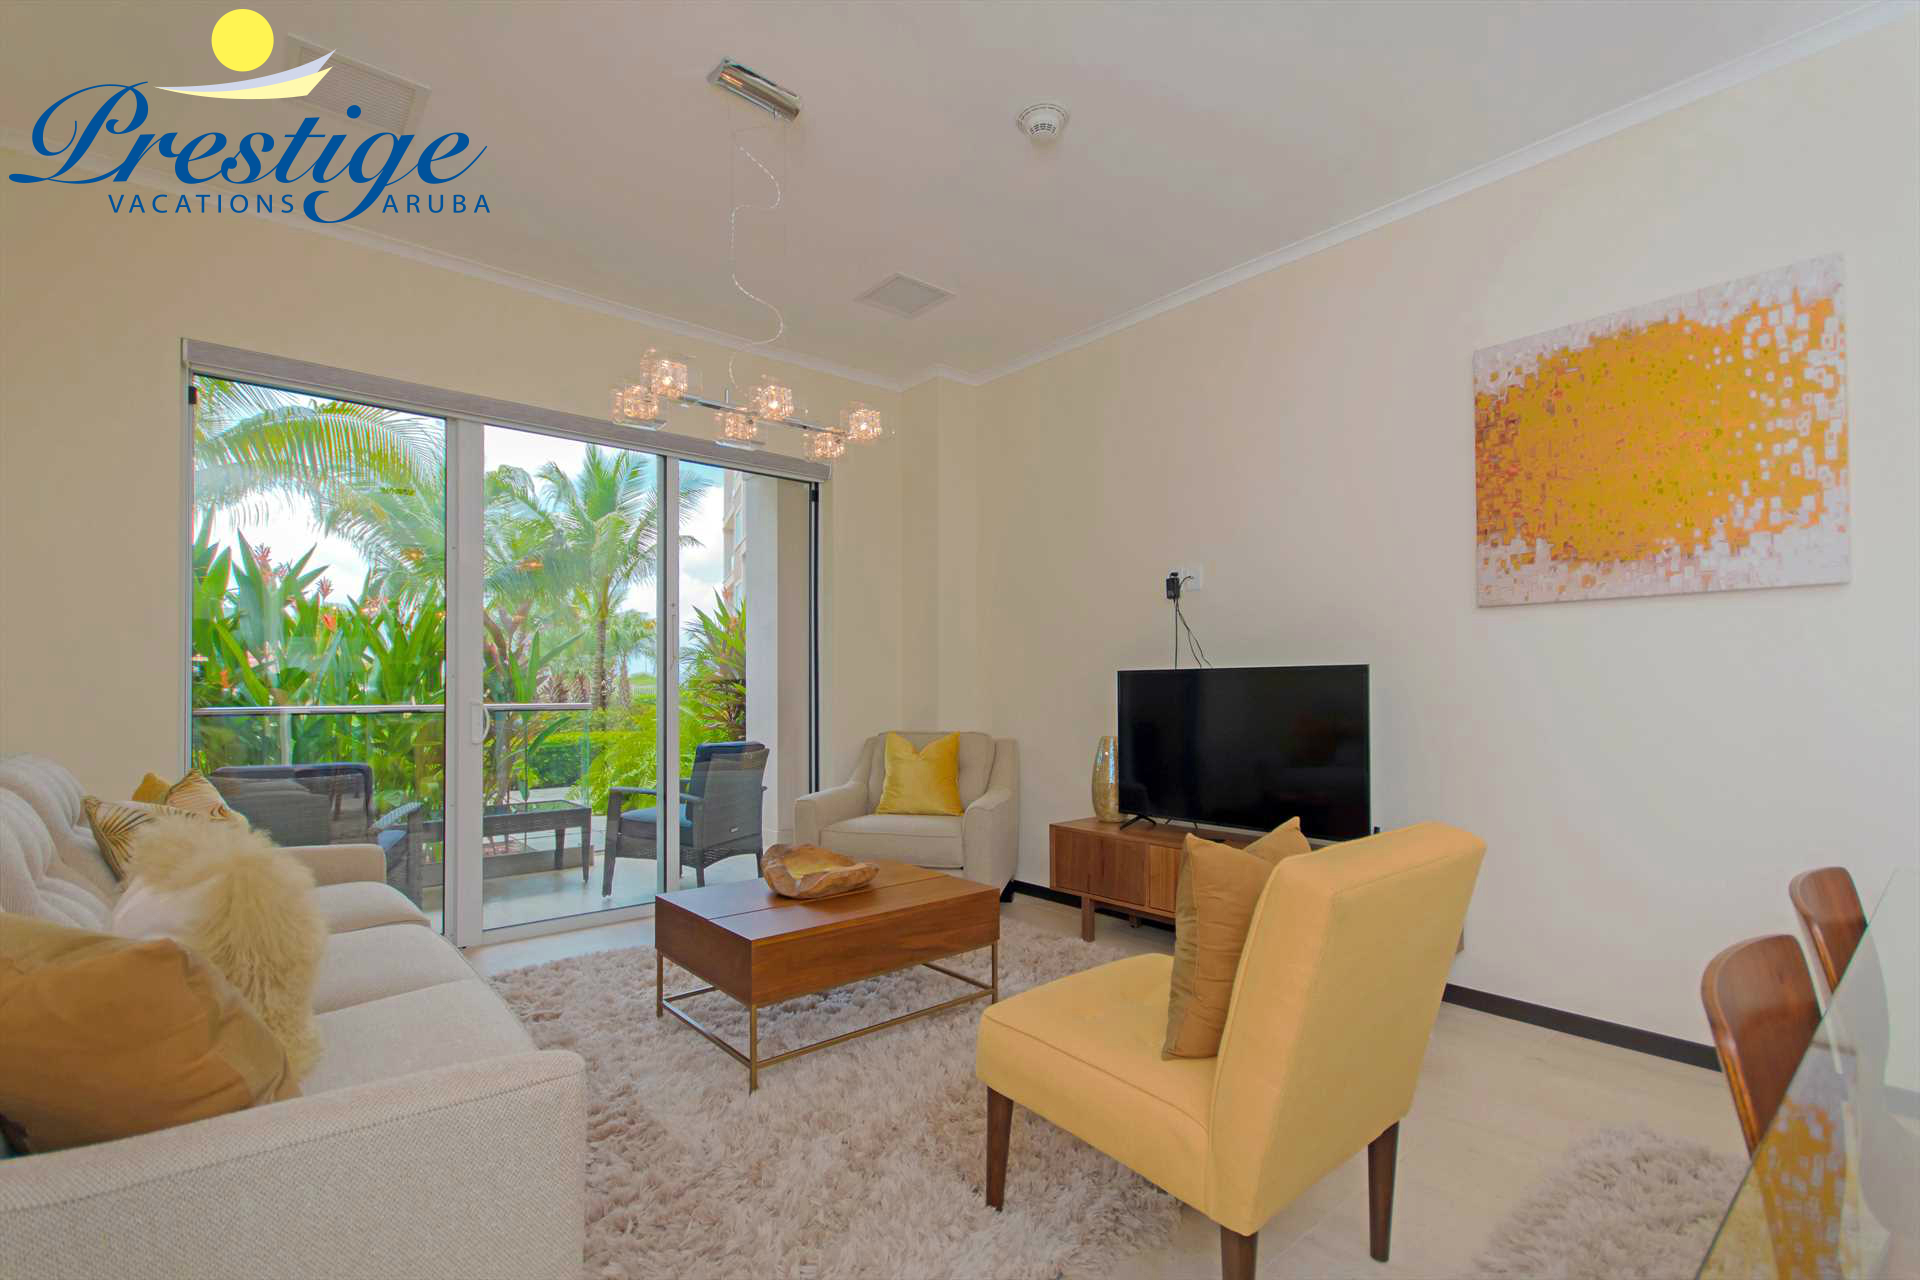 Your ultimate vacation rental living room!